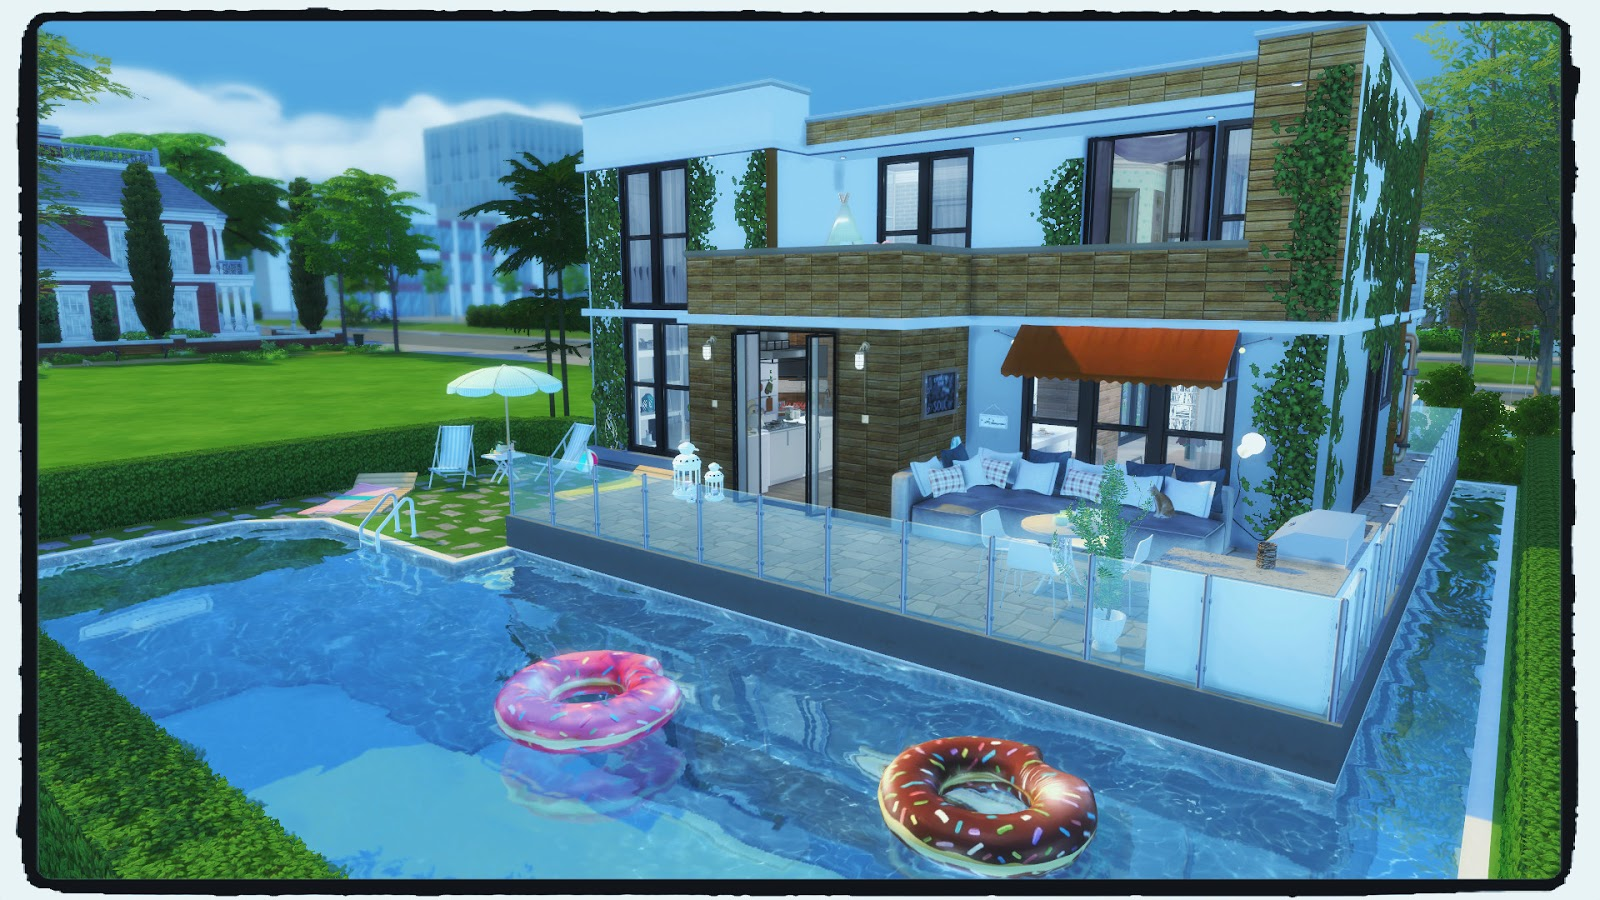 Sims 4 building on newcrest modern house with pool for Pool designs sims 4